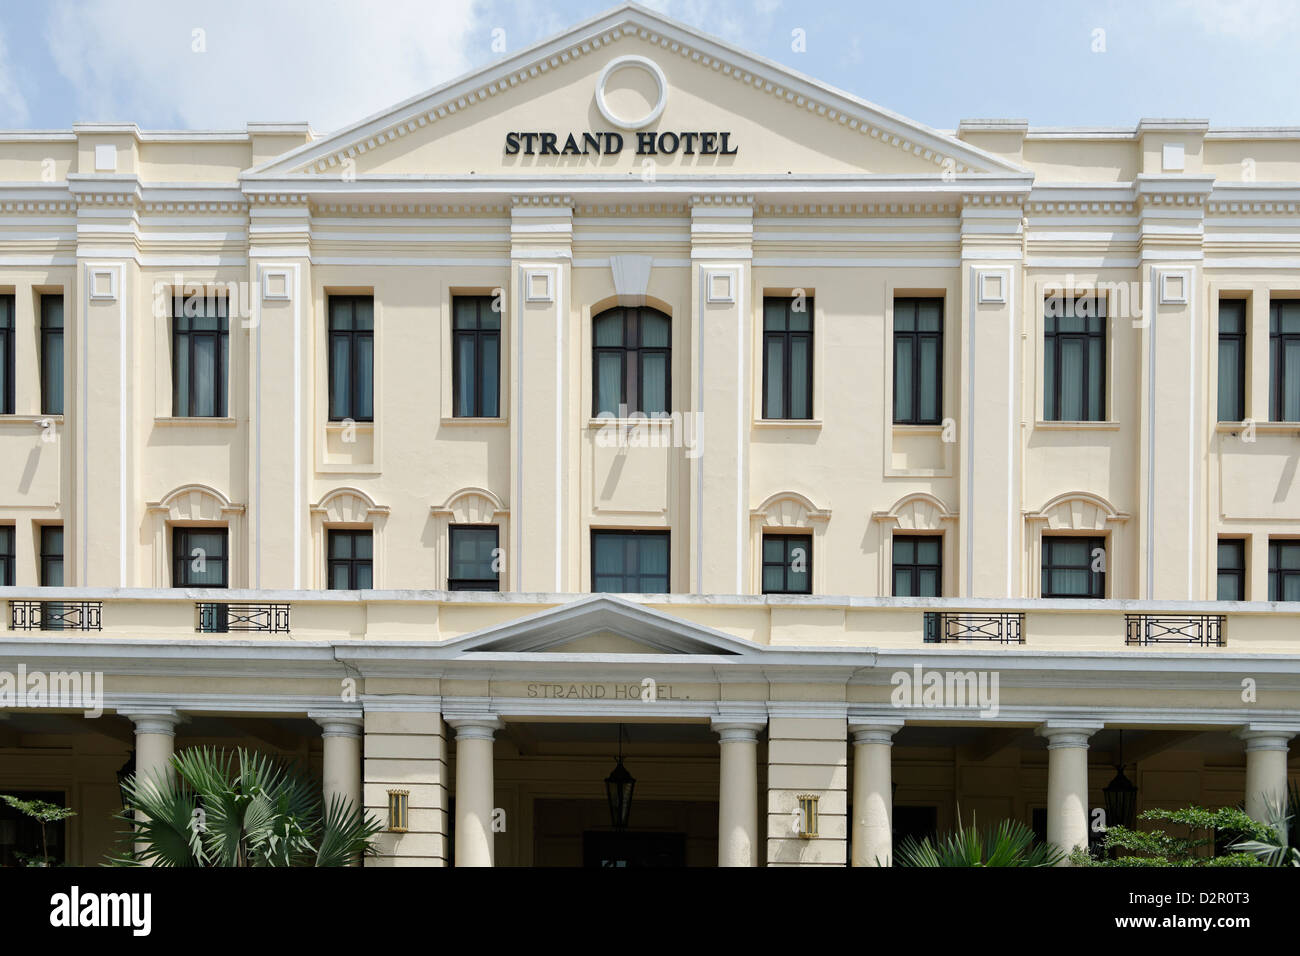 The Strand Hotel, a Victorian-style hotel built in 1896, Yangon (Rangoon), Yangon region, Myanmar - Stock Image